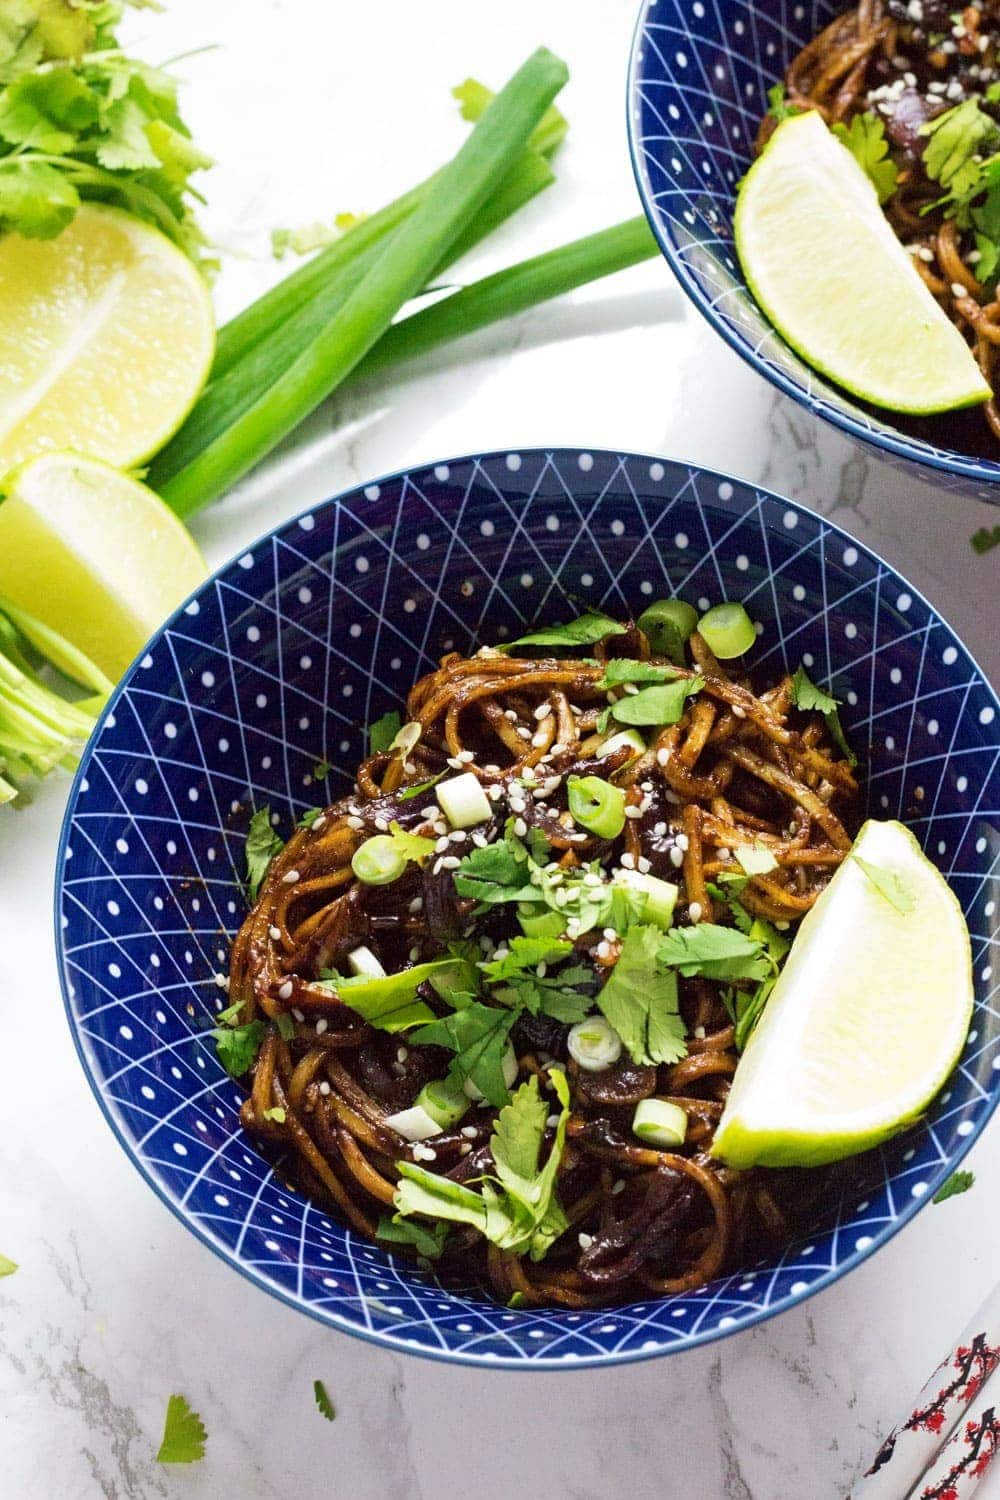 15 Minute Soy Peanut Noodles • The Cook Report